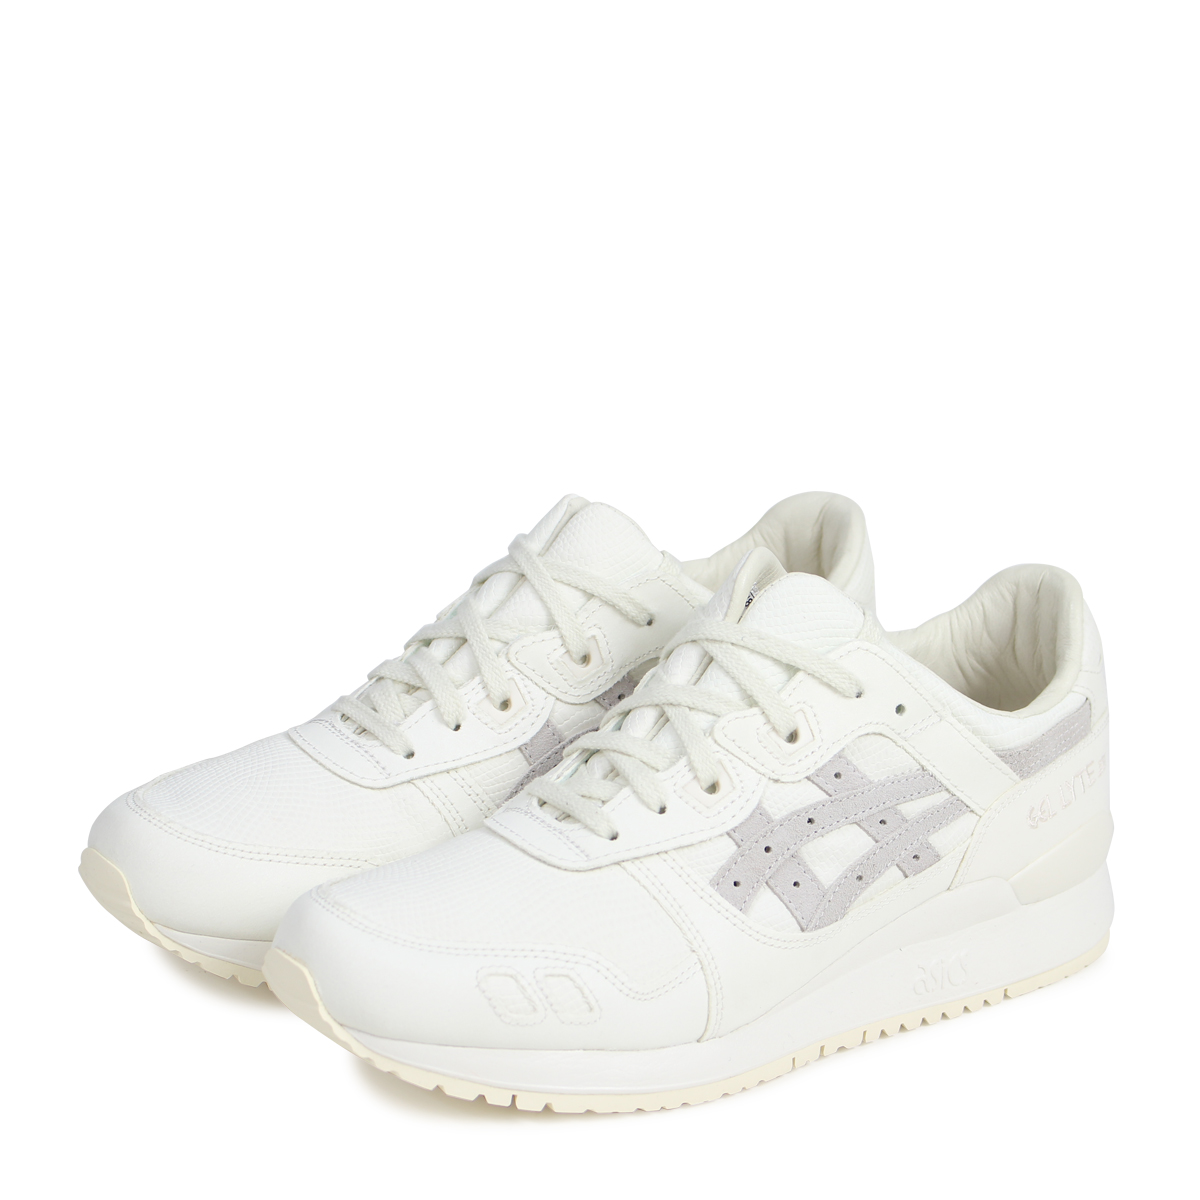 best service 420e6 a9f52 asics Tiger GEL-LYTE III ASICS tiger gel light 3 sneakers H842N-0000 men  off-white [load planned Shinnyu load in reservation product 3/20  containing] ...